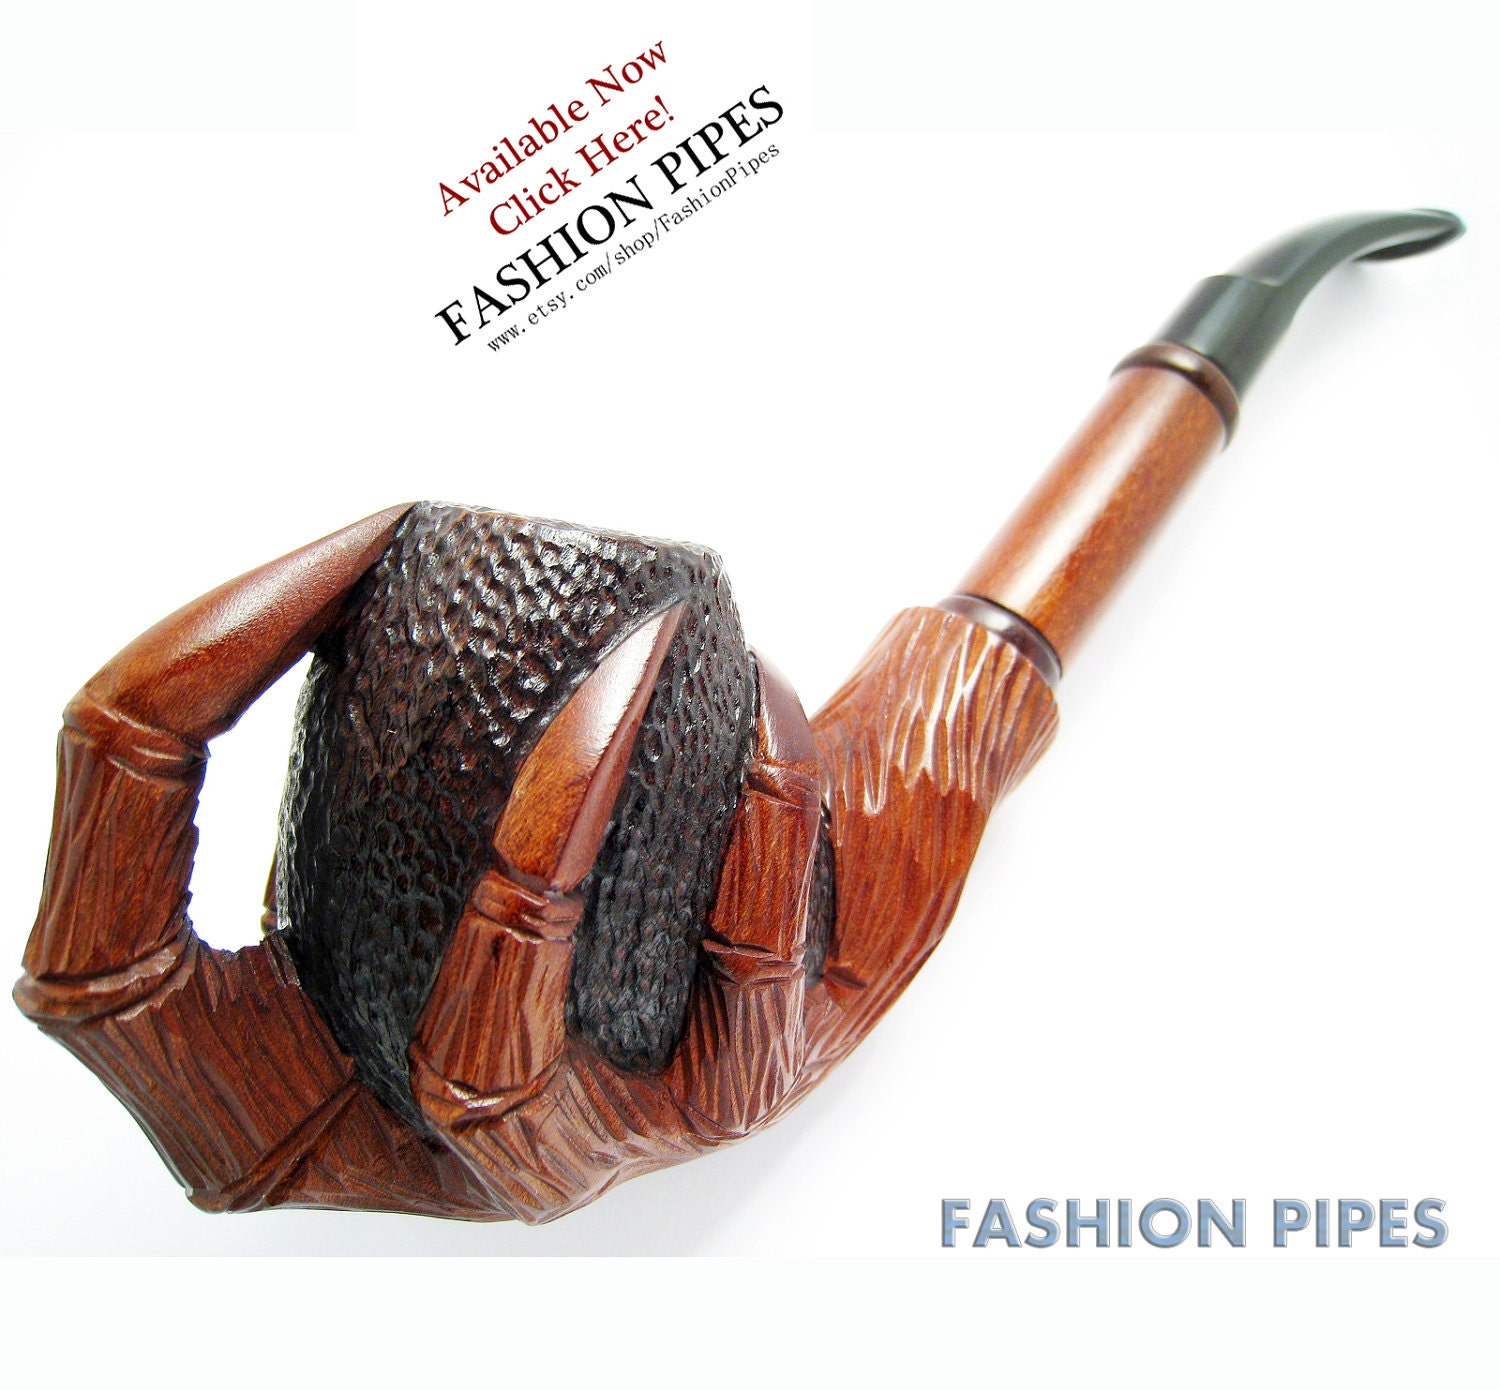 Author Tobacco Pipe Pipes Smoking Pipe Pipes For By